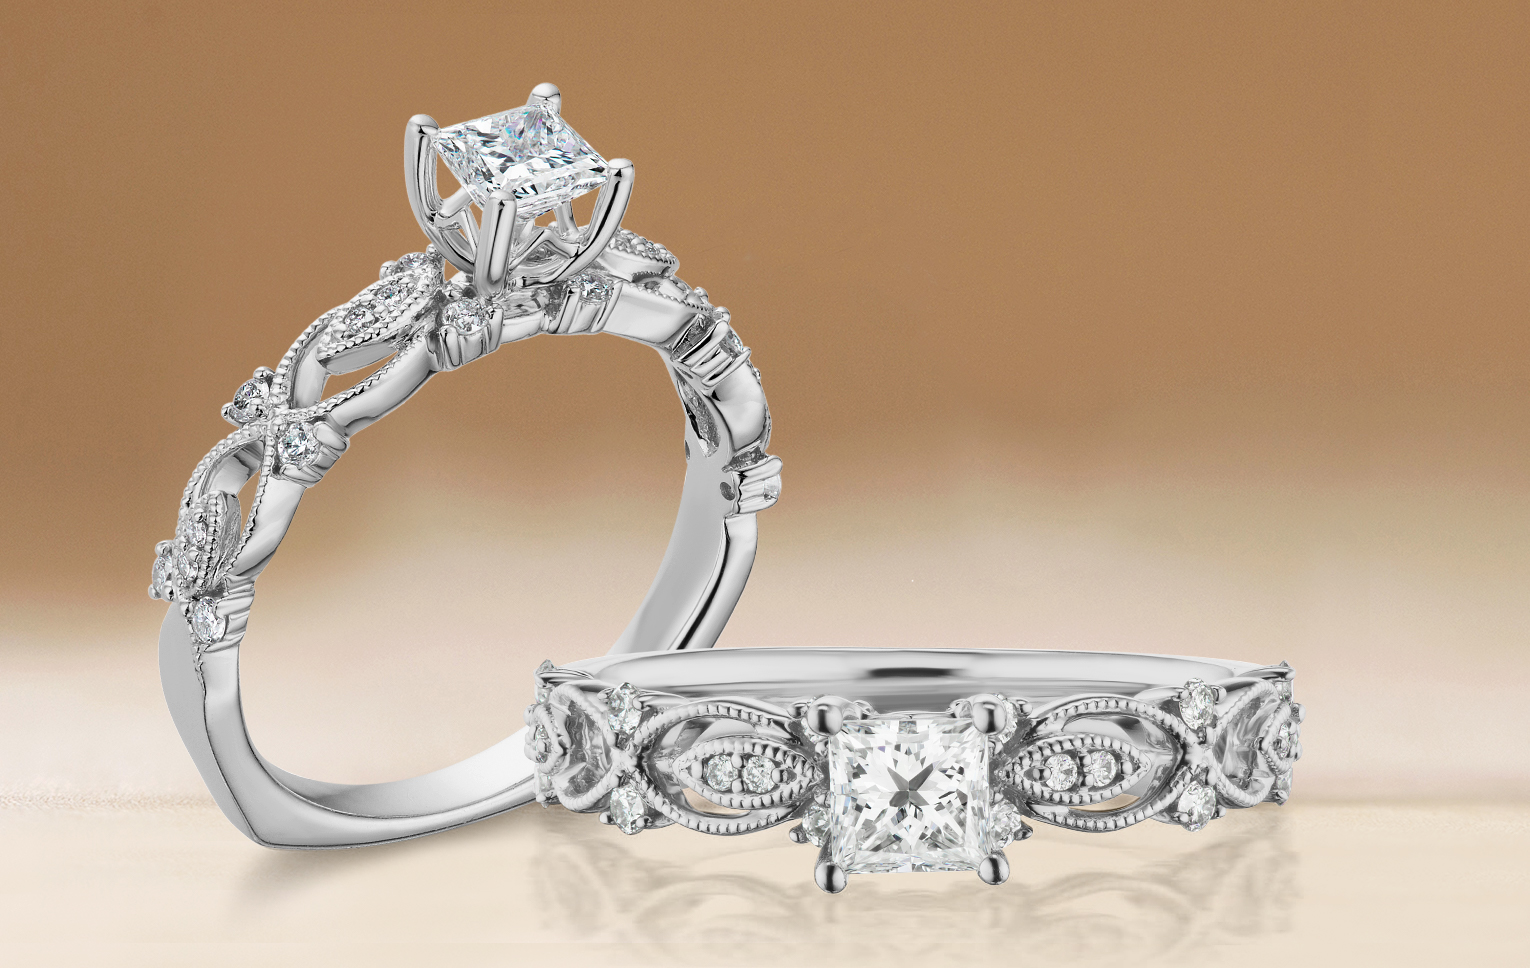 Adventum preset engagement ring in white gold